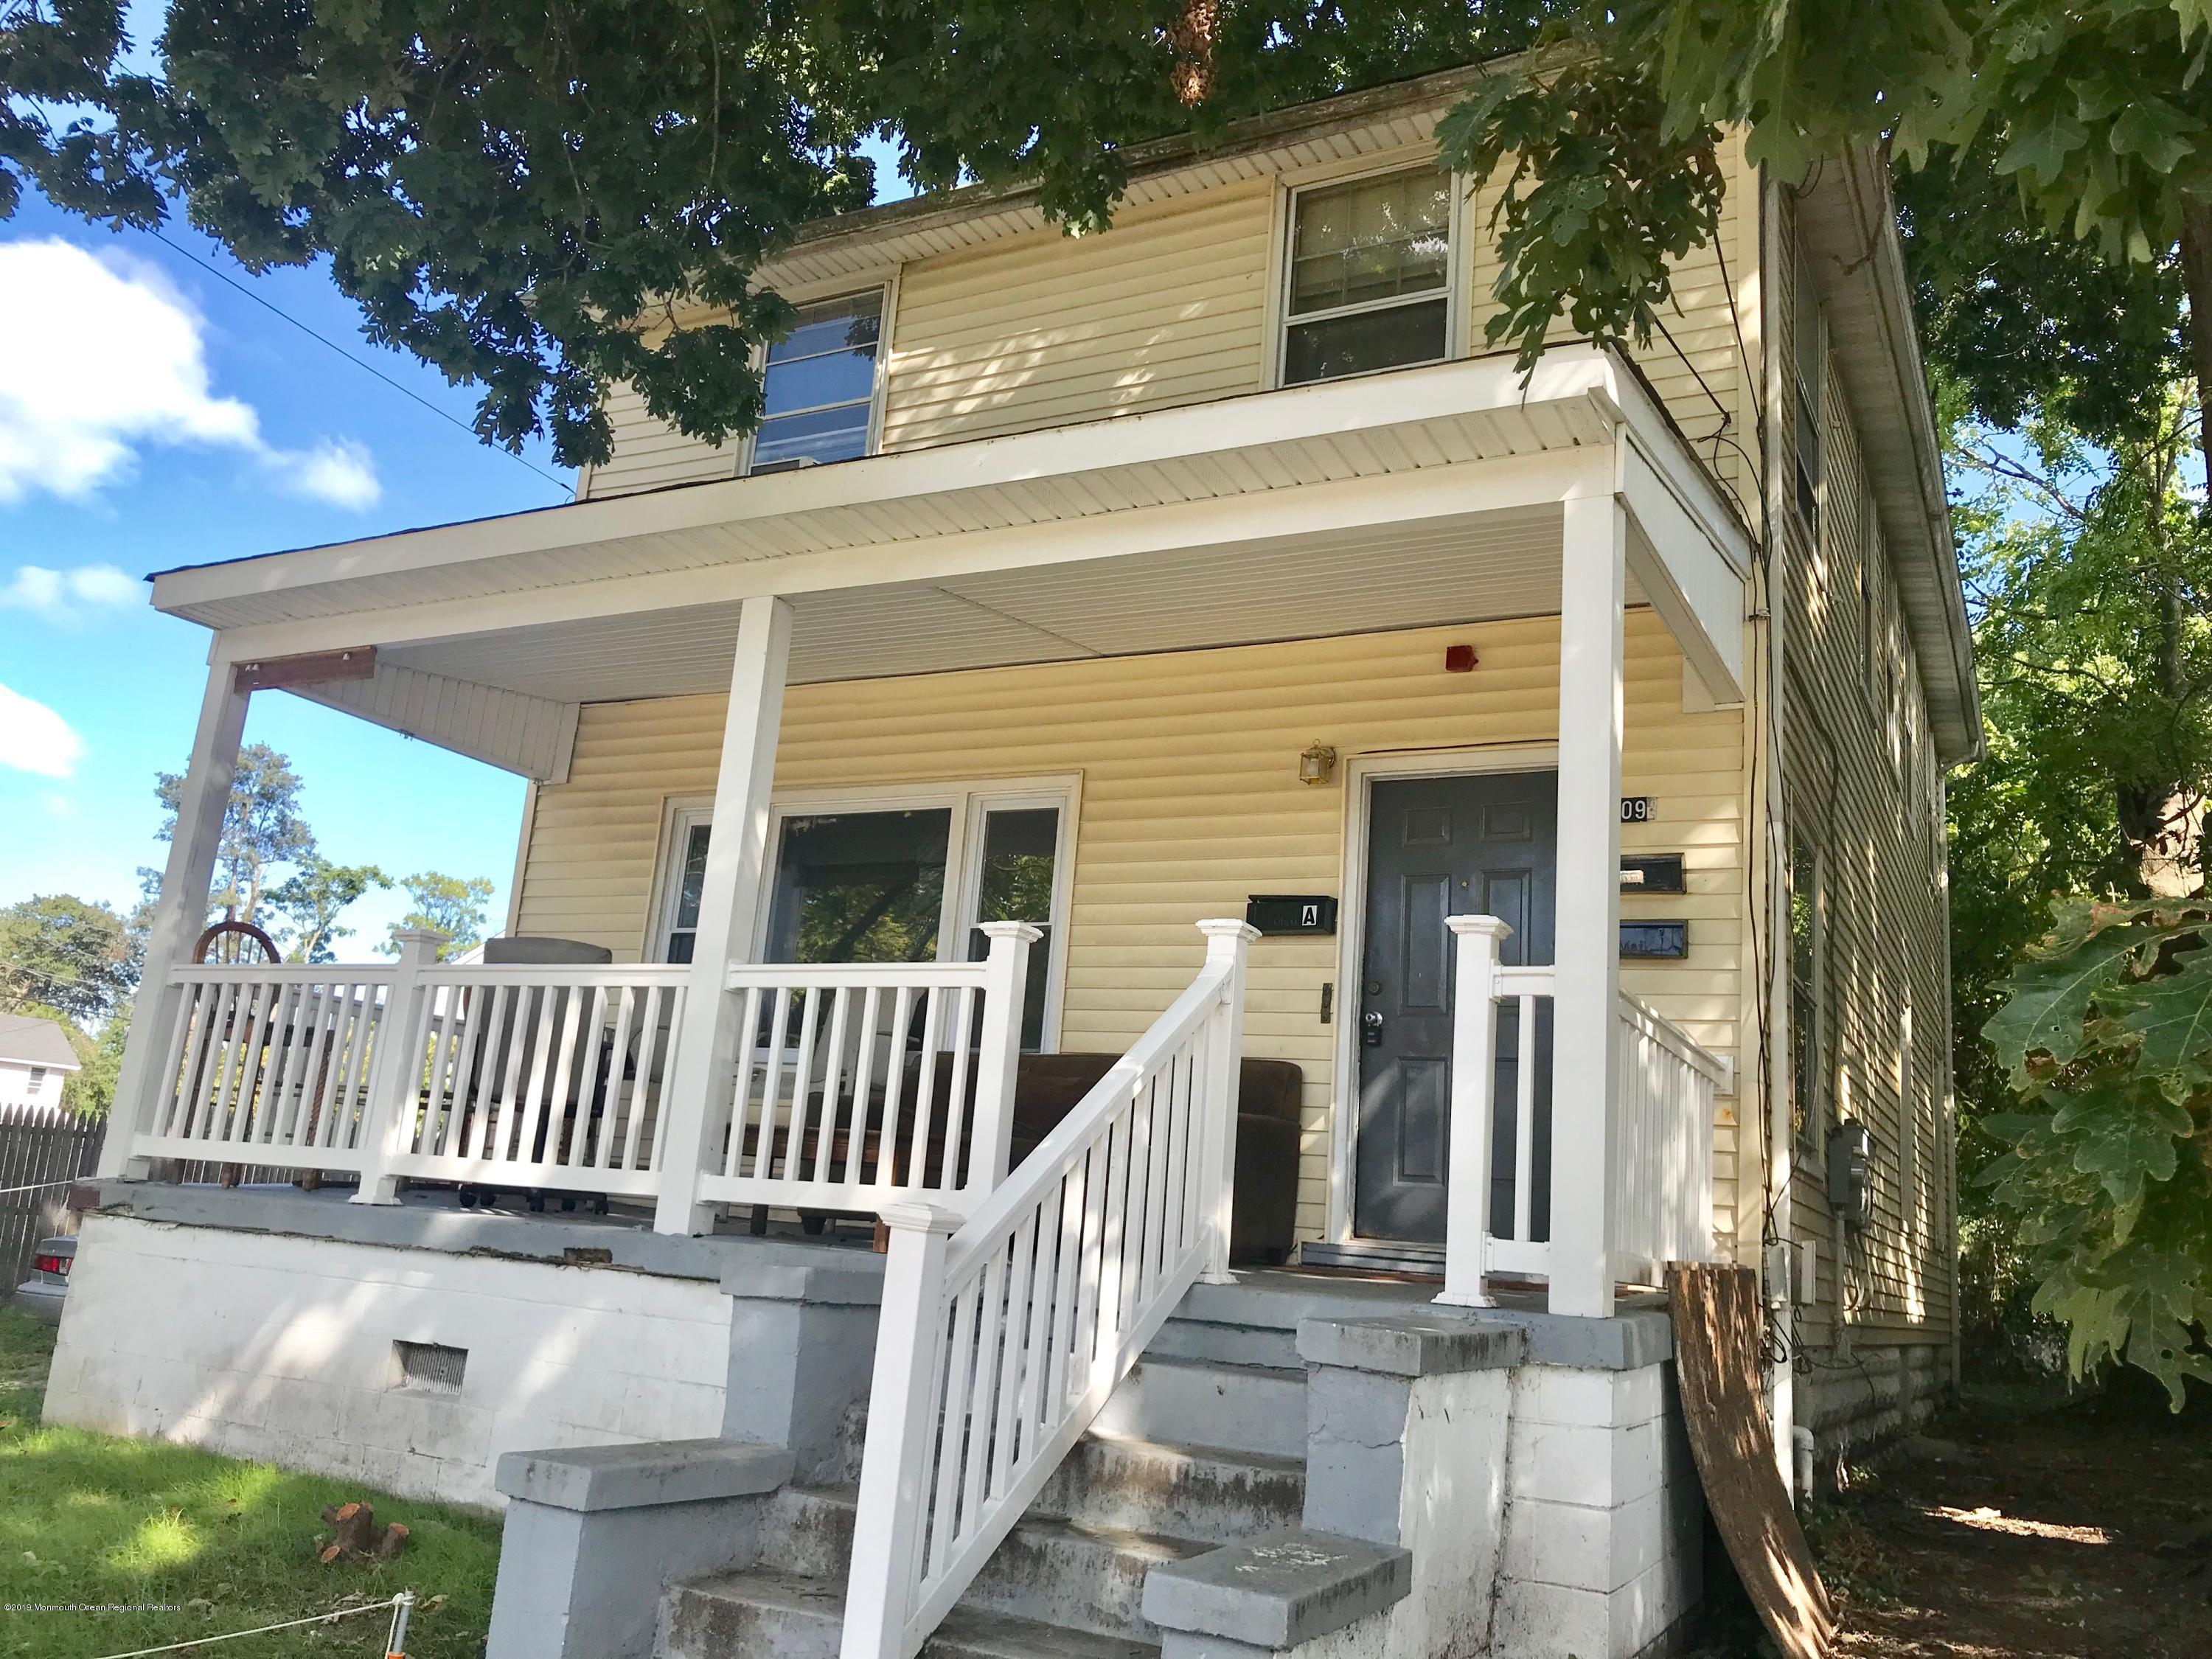 Newly refinished 2BR 1st floor unit of 3 family home. Large living room for family, with lots of light. Newly refinished HW floors with storage in basement. Off-street parking available. Good credit a must. Available now!